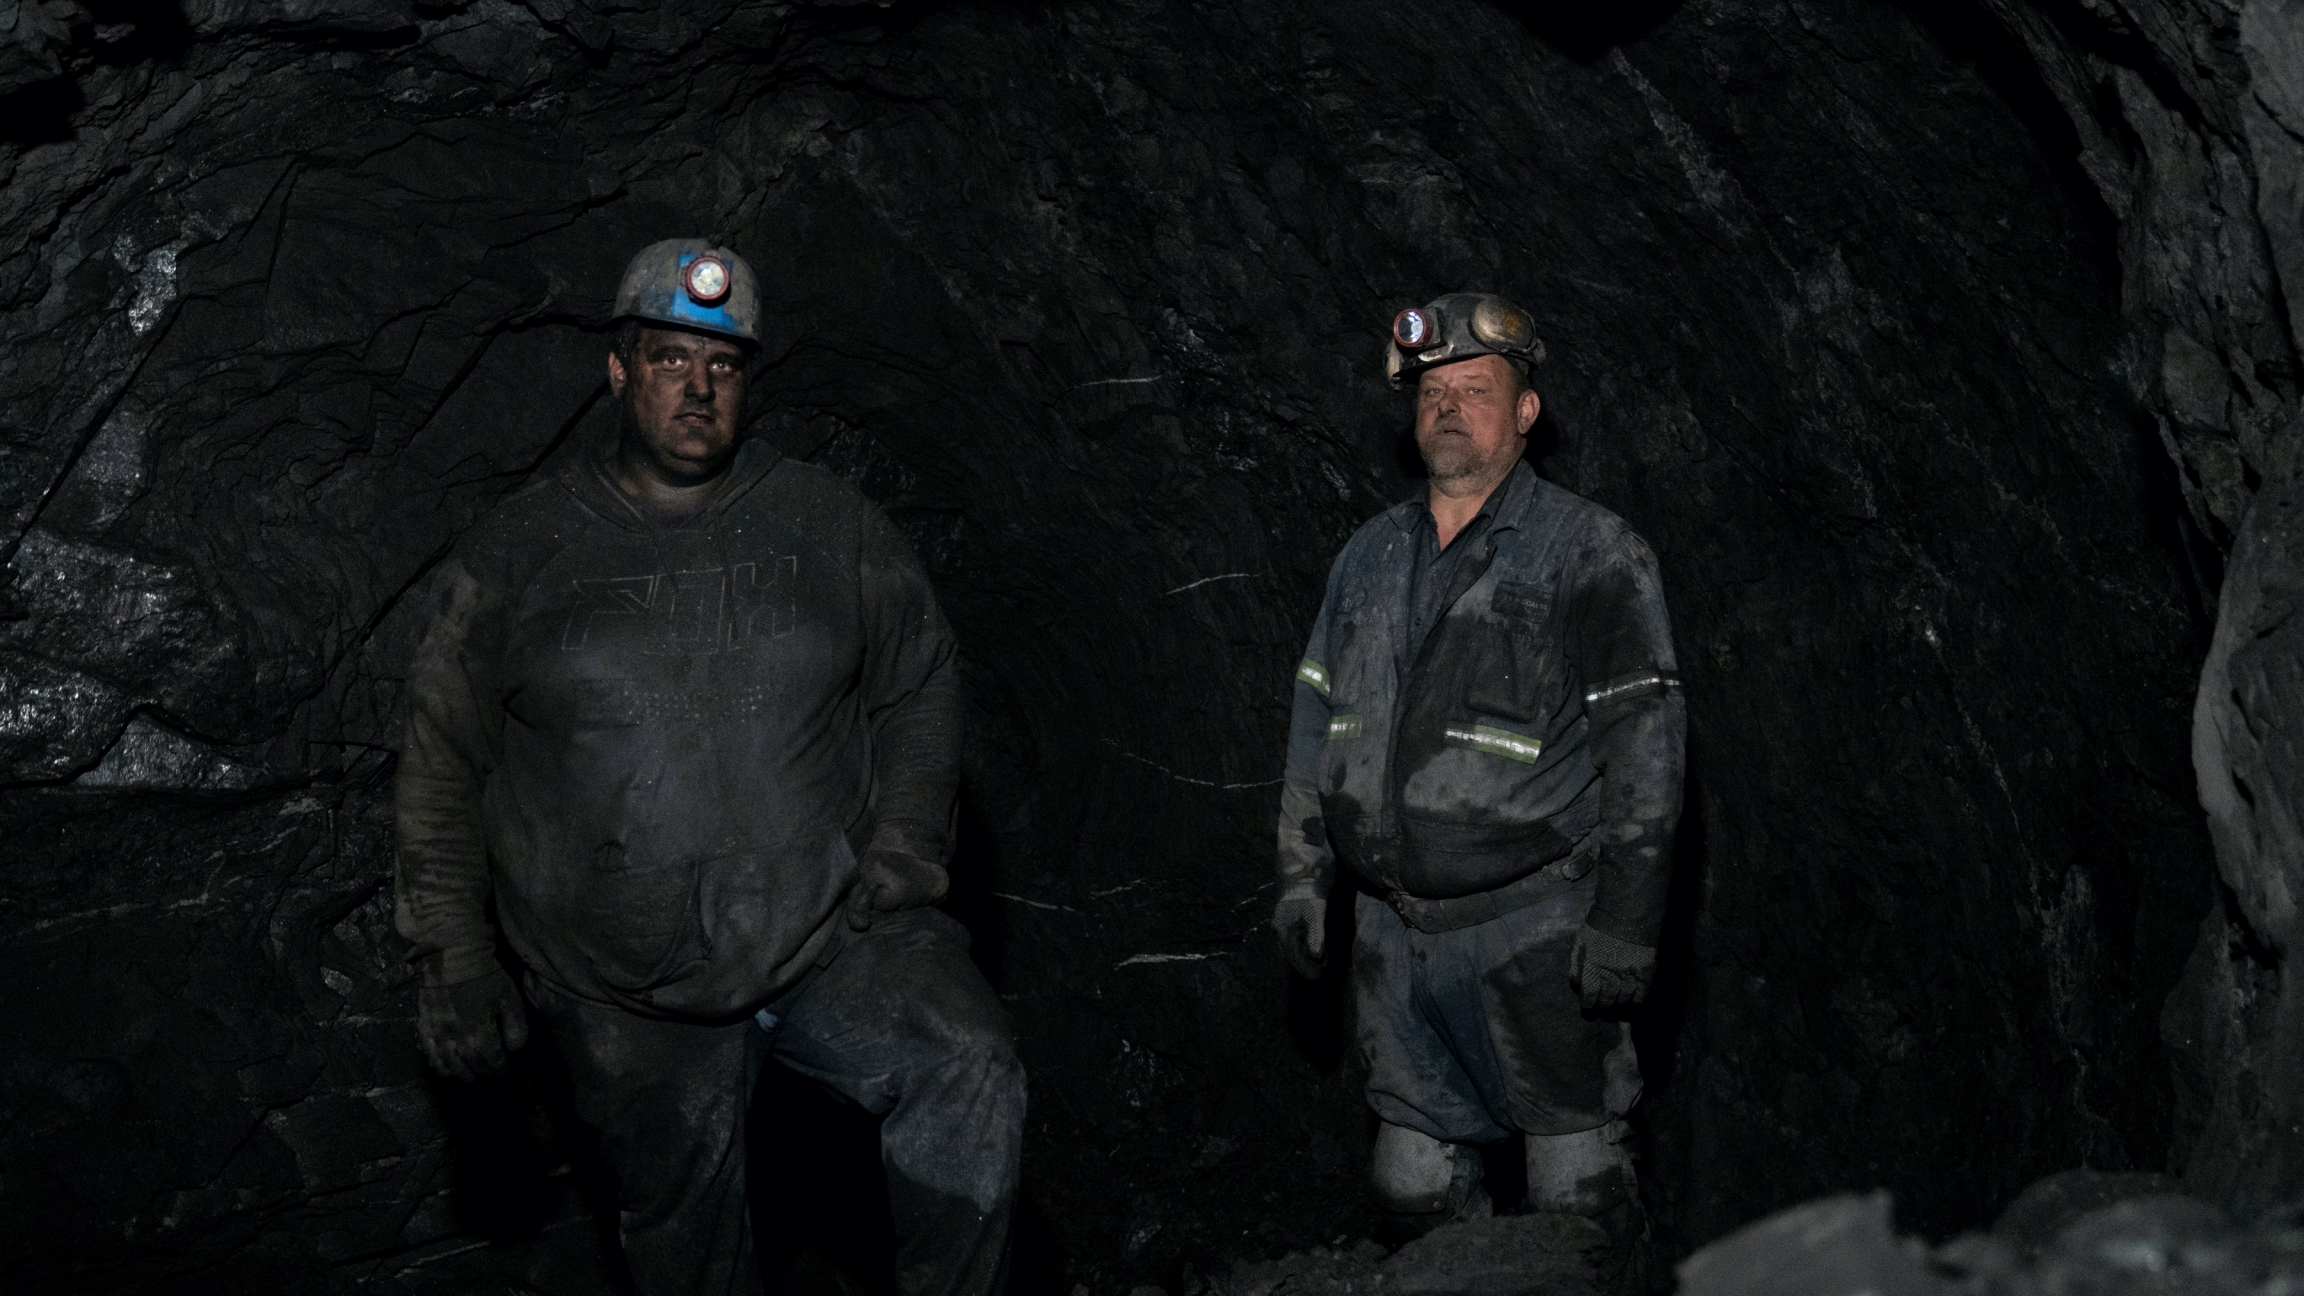 Two coal miners in uniform with skinned blackened from coal mining.